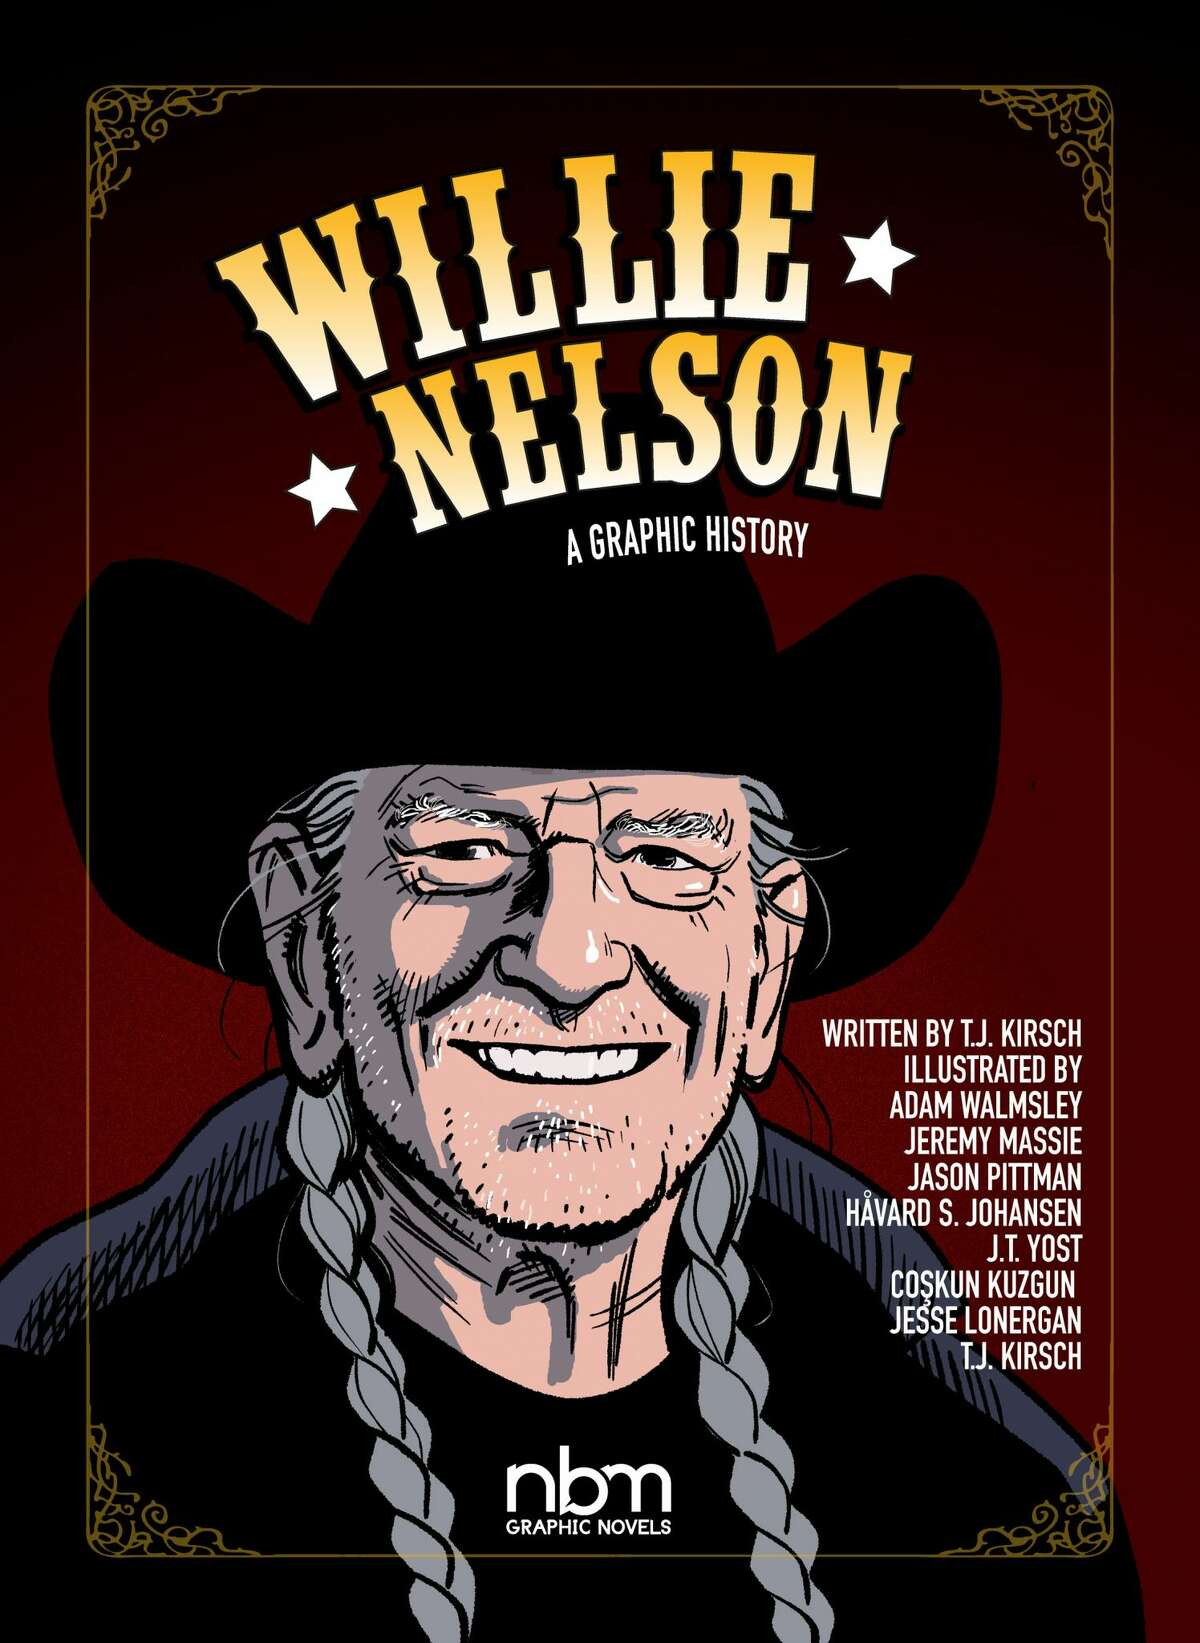 TJ Kirsch, of East Greenbush, authored a graphic novel on Willie Nelson.